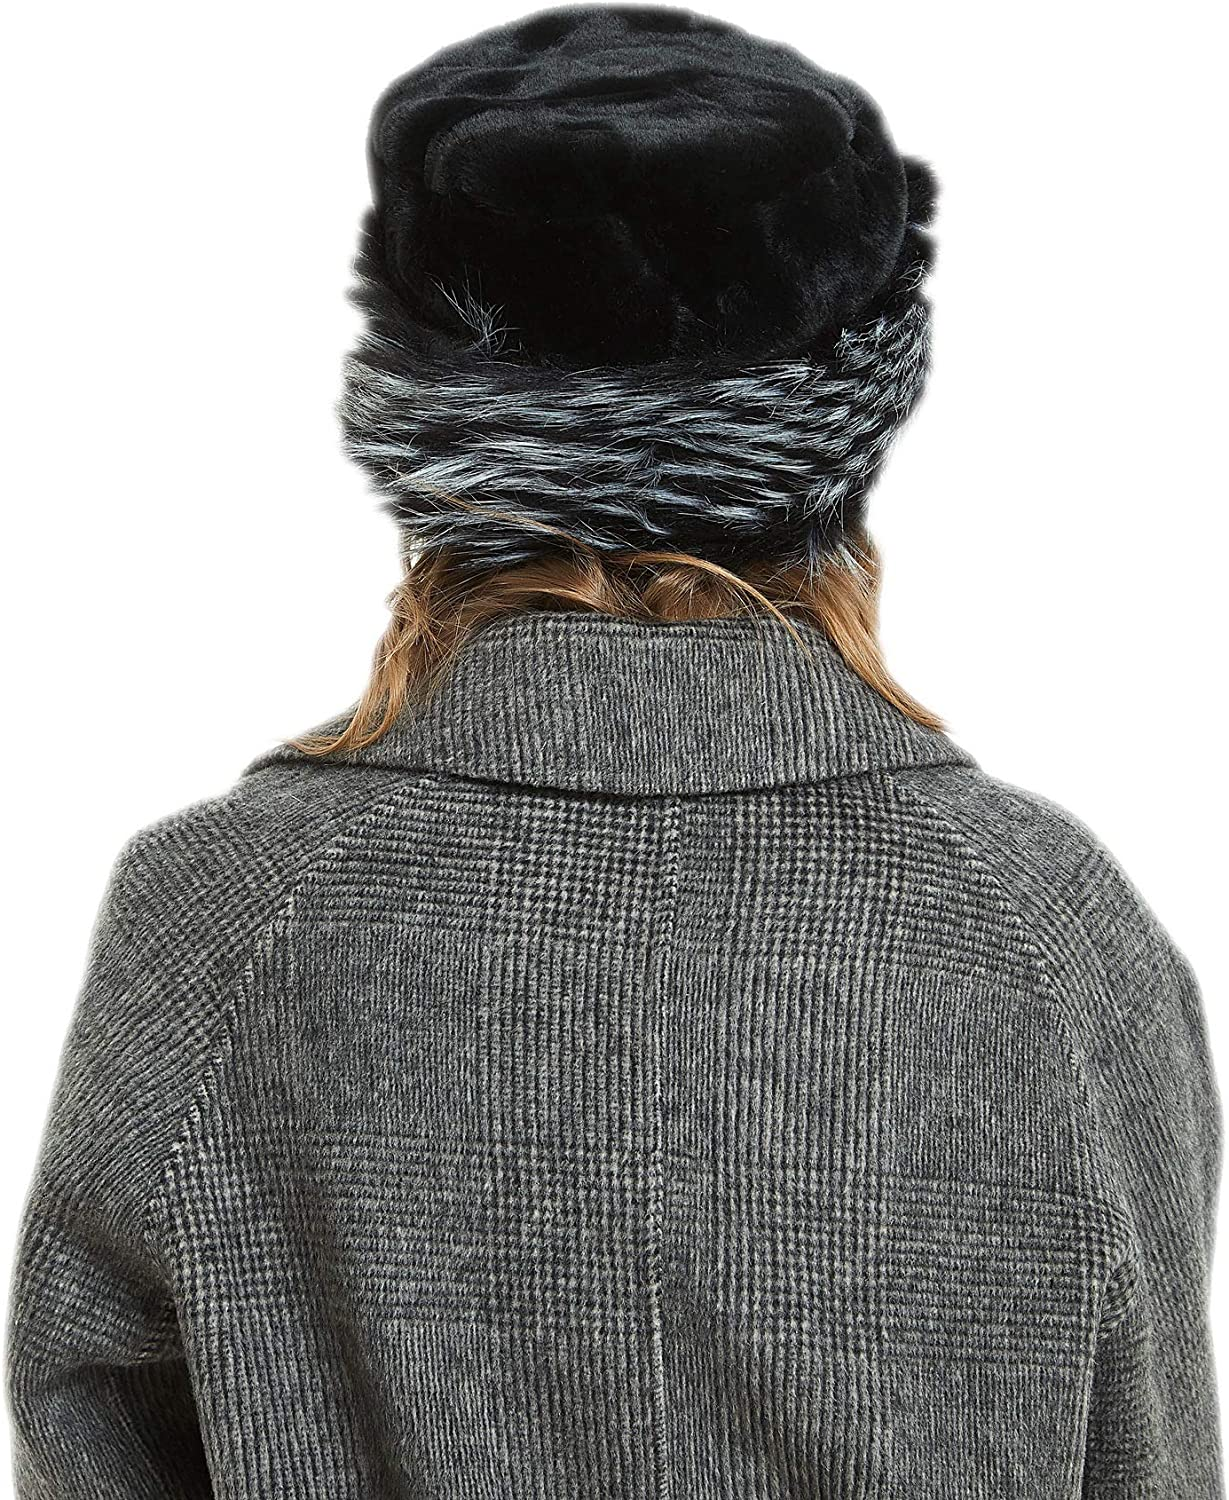 soul young Womens Leopard Faux Fur Hat with Fleece and Elastic for Winter